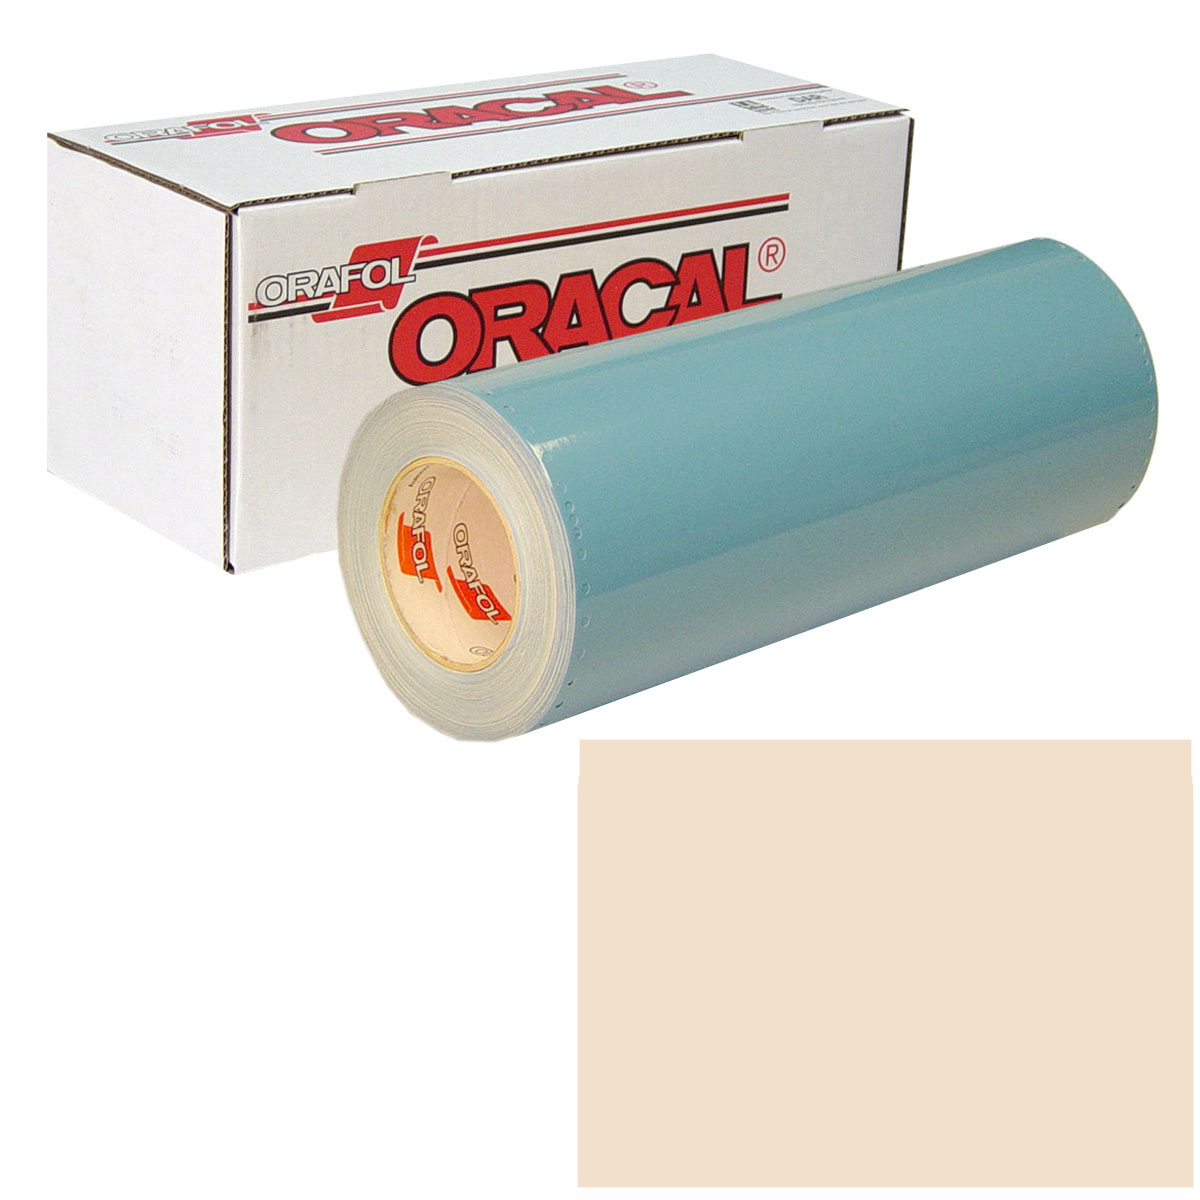 ORACAL 751 Unp 48in X 10yd 018 Light Ivory